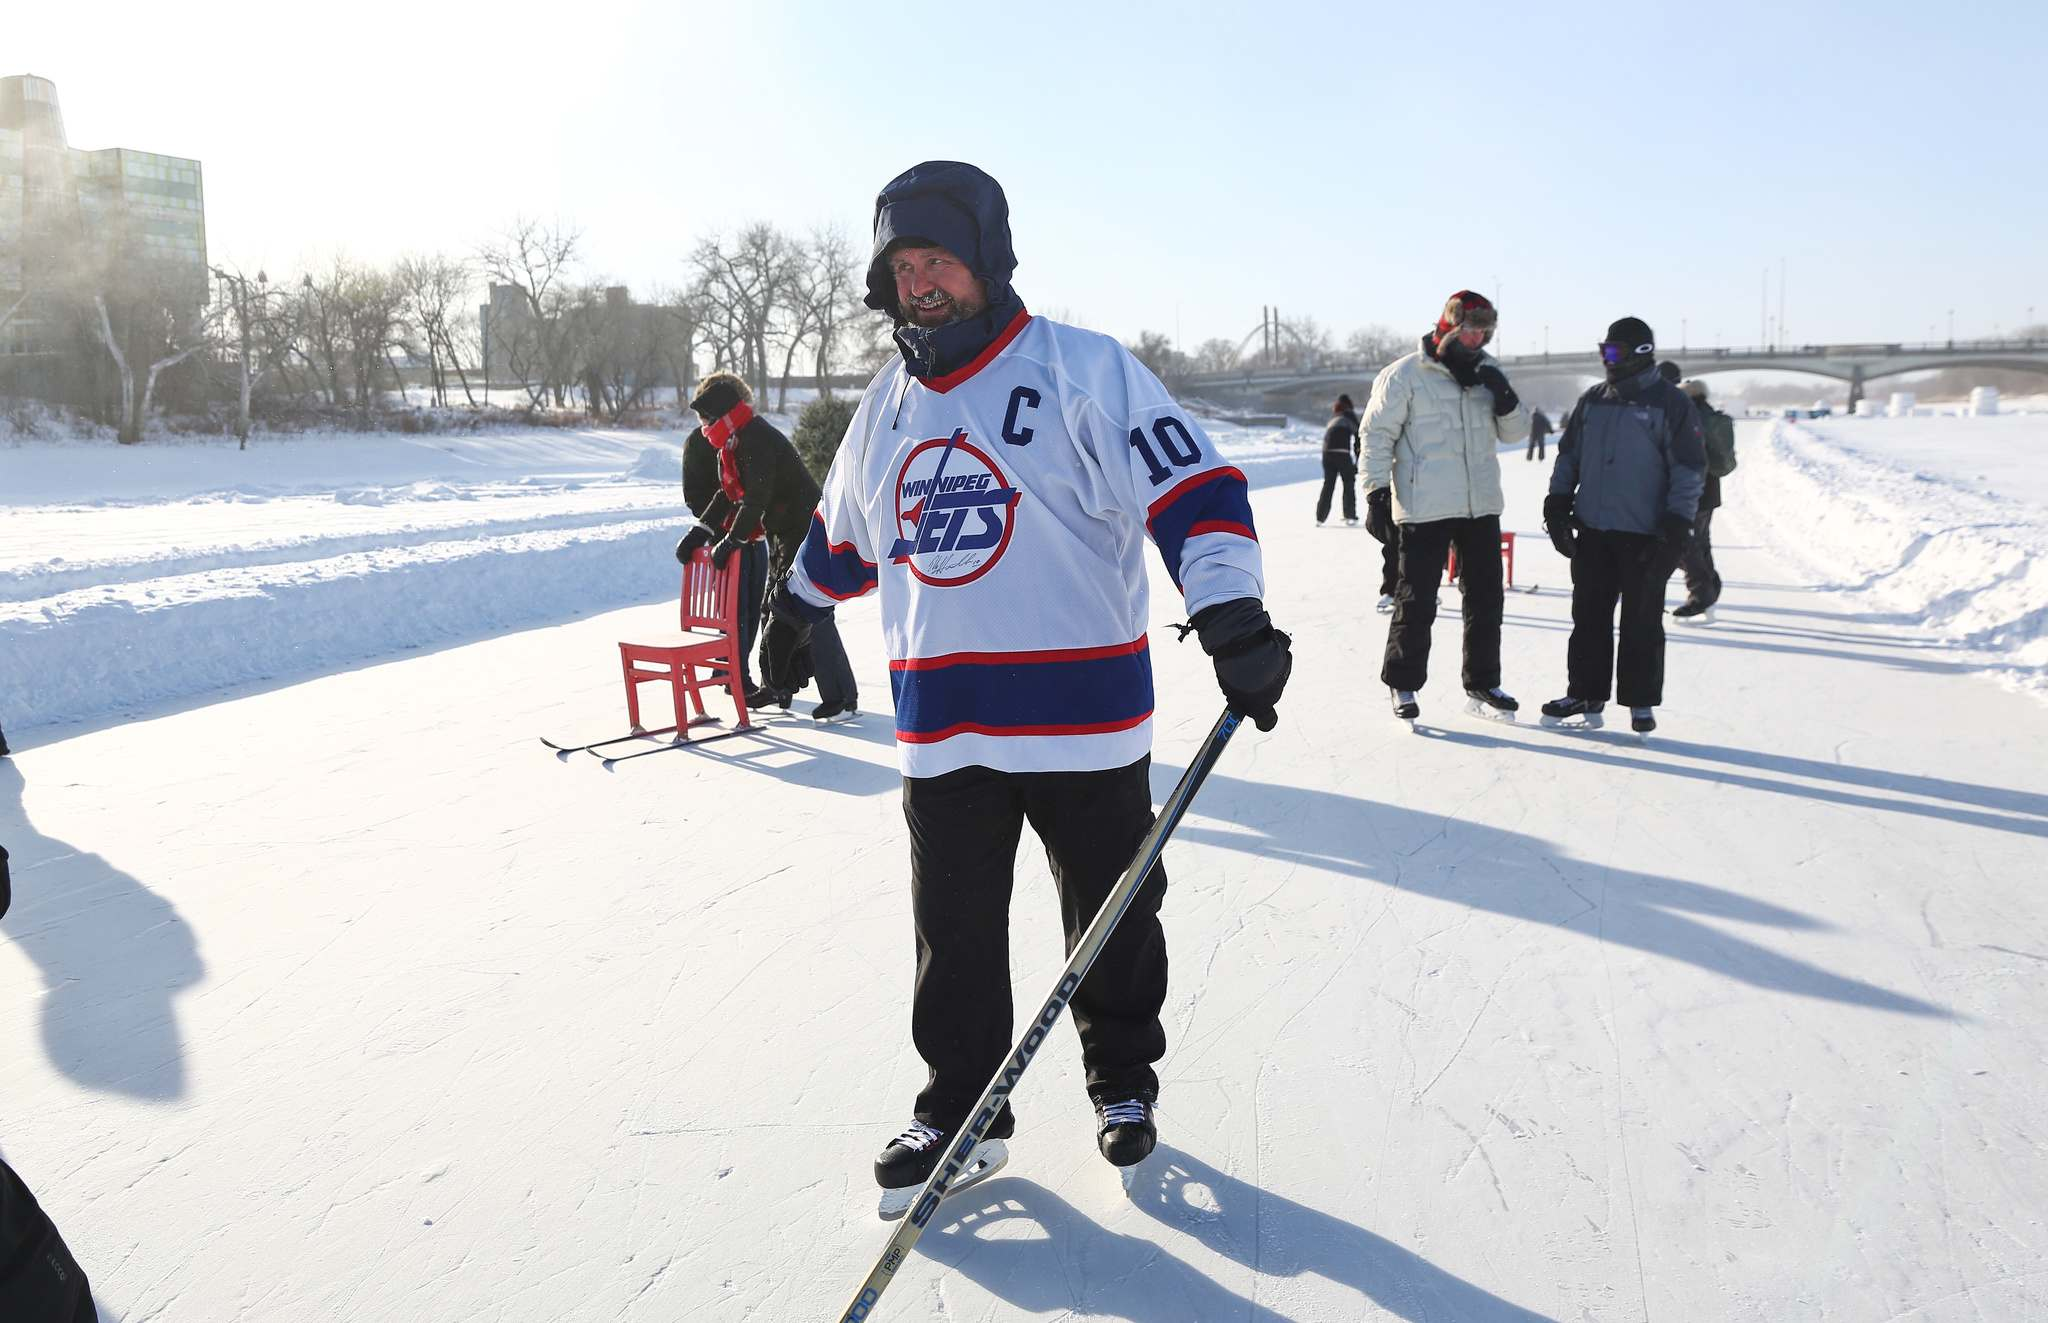 James Hatch, a former U.S. Navy SEAL from Virginia, takes to the ice near The Forks after accepting a bet he couldn't win.